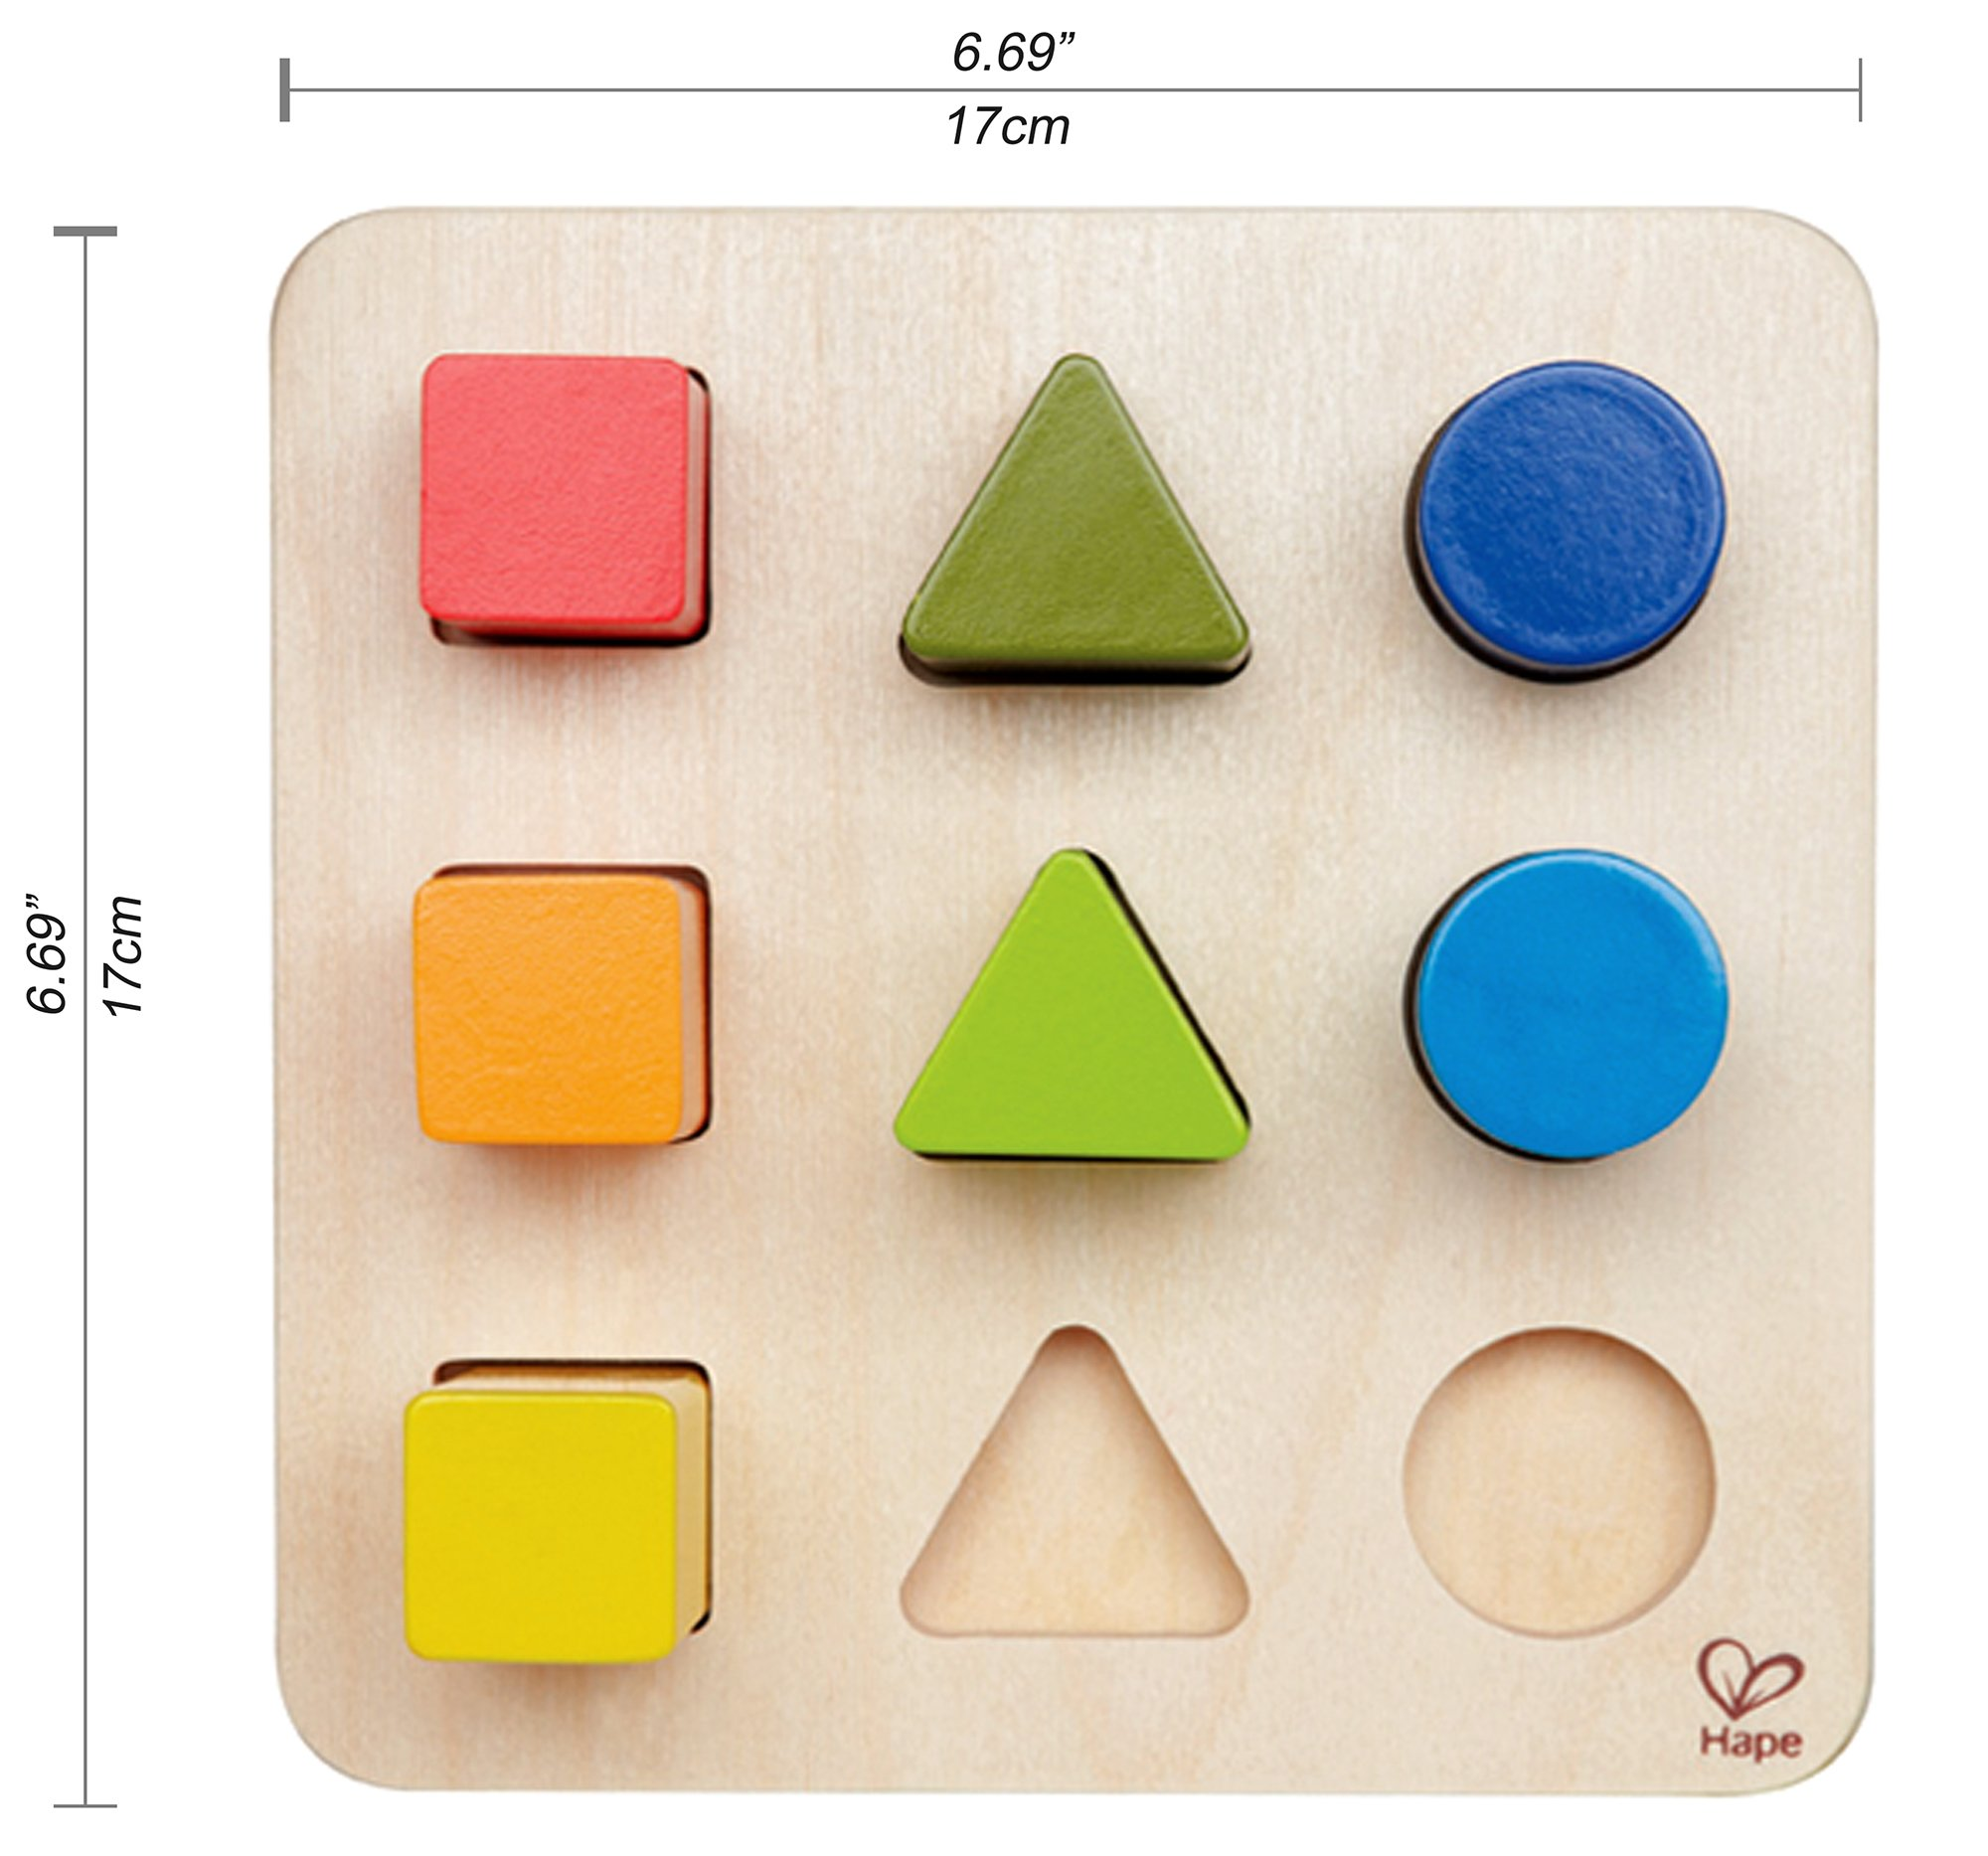 Hape Color and Shape Wooden Block Sorter by Hape (Image #4)